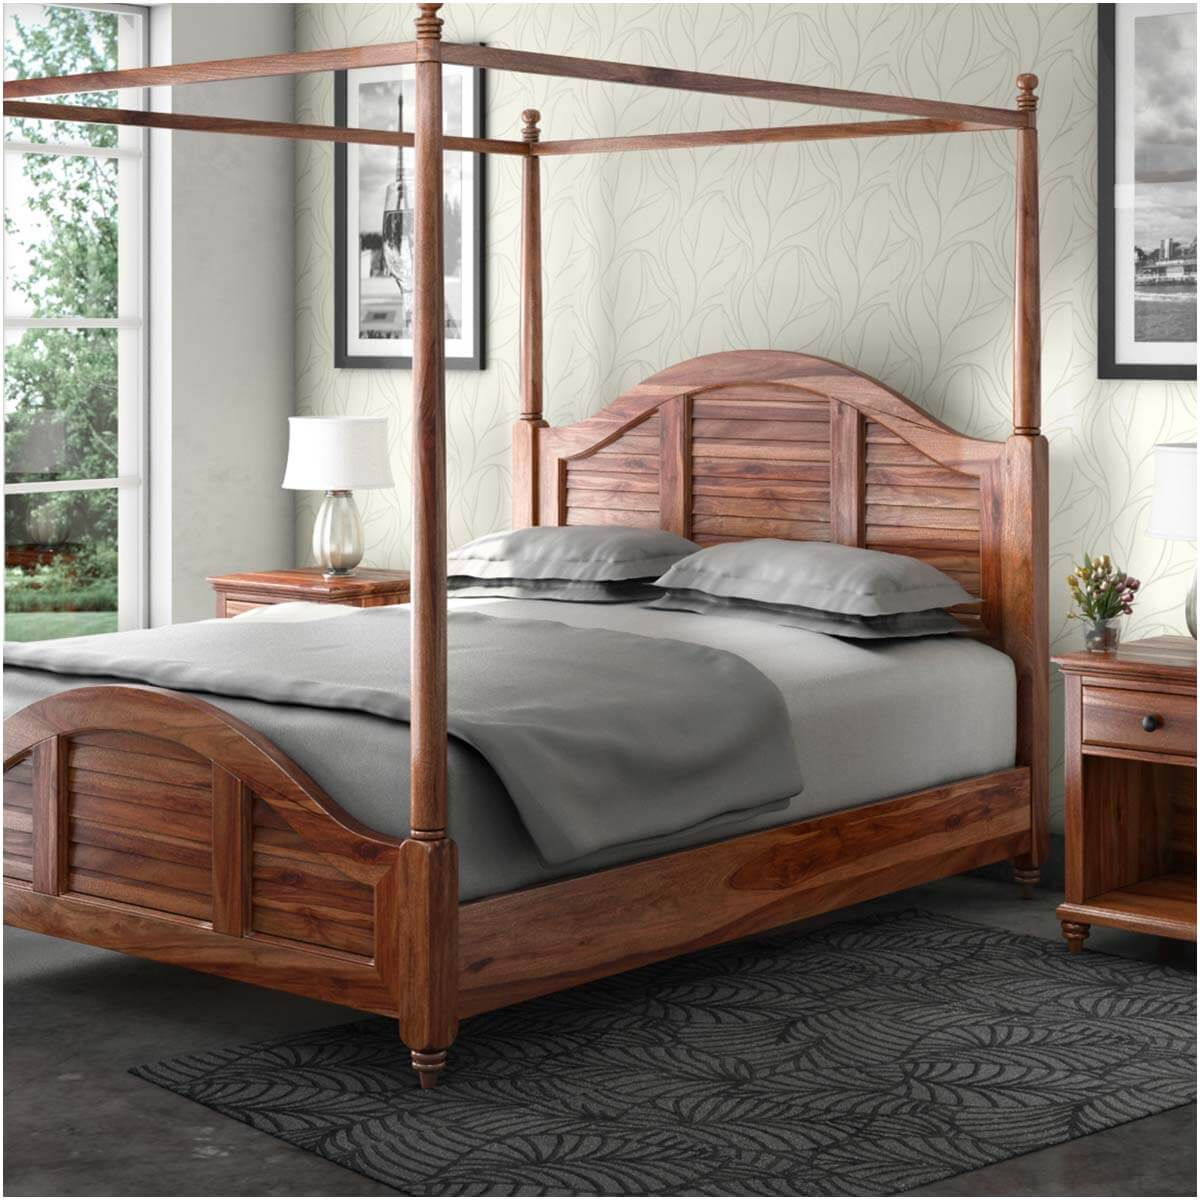 Livingston handcrafted solid wood canopy bed